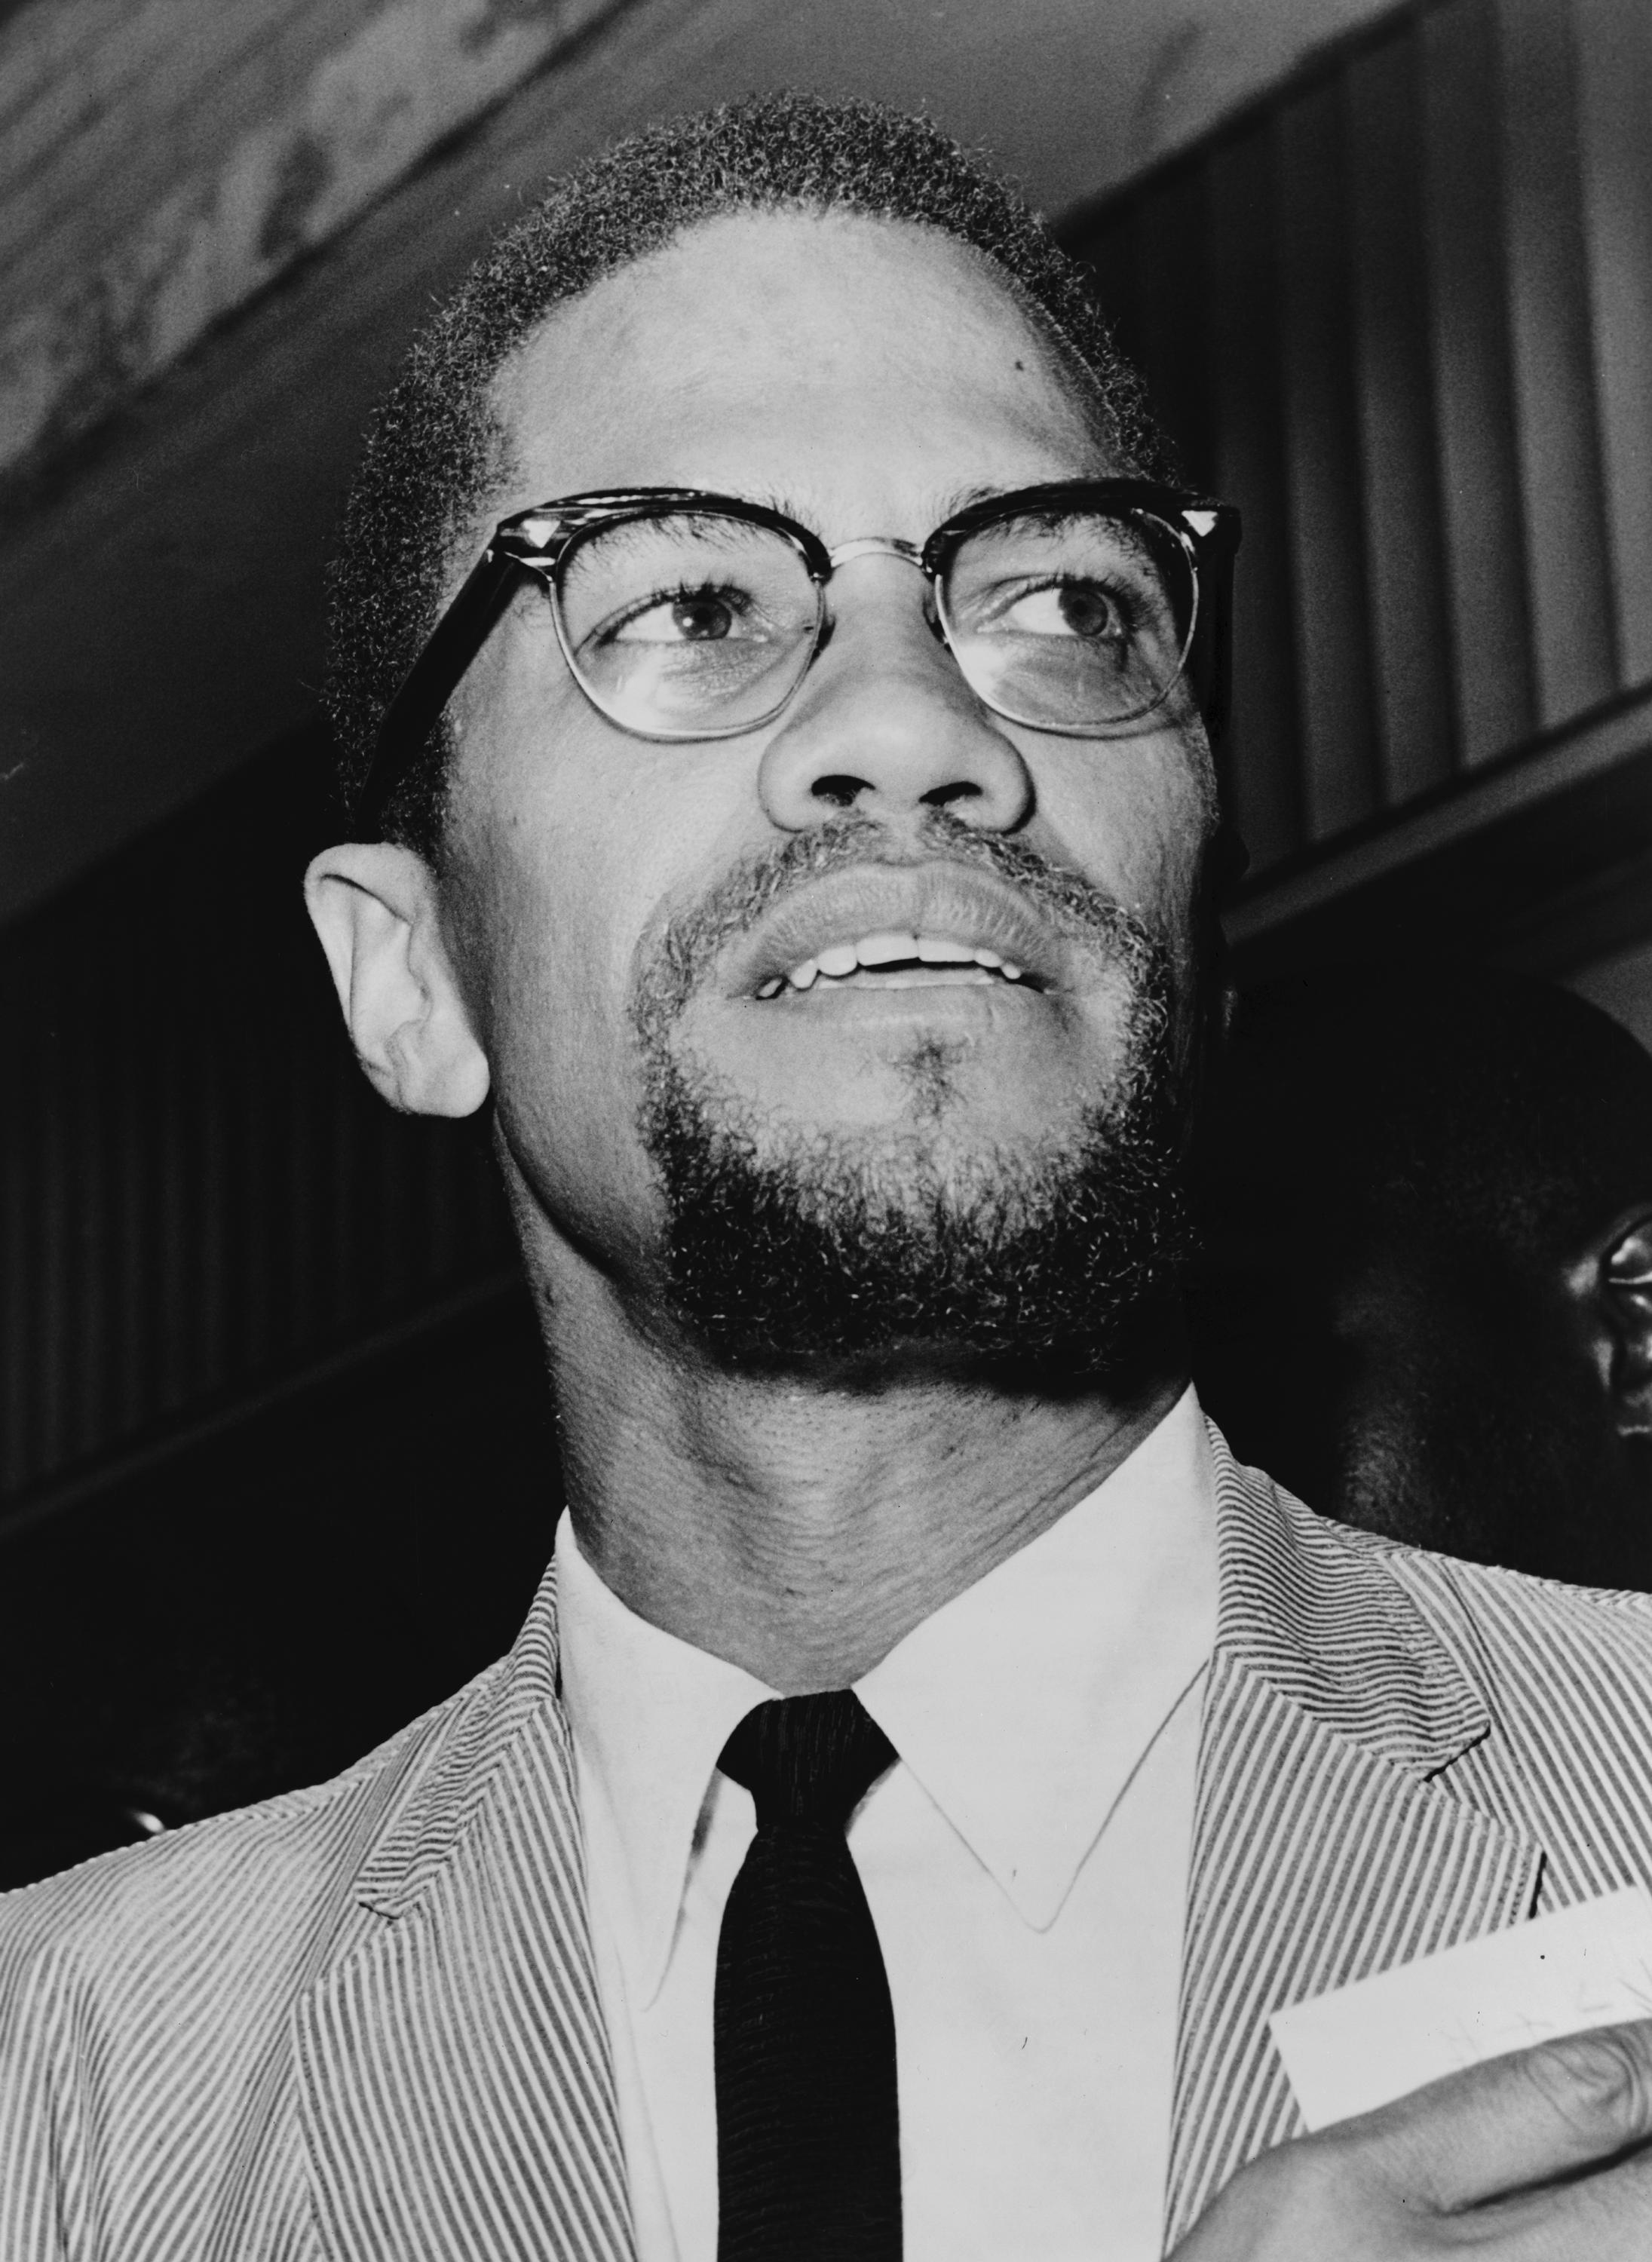 malcom men Malcolm x violence quotes - 1 if violence is wrong in america, violence is wrong abroad if it is wrong to be violent defending black women and black children and black babies and black men, then it is wrong for america to draft us, and make us violent abroad in defense of her.